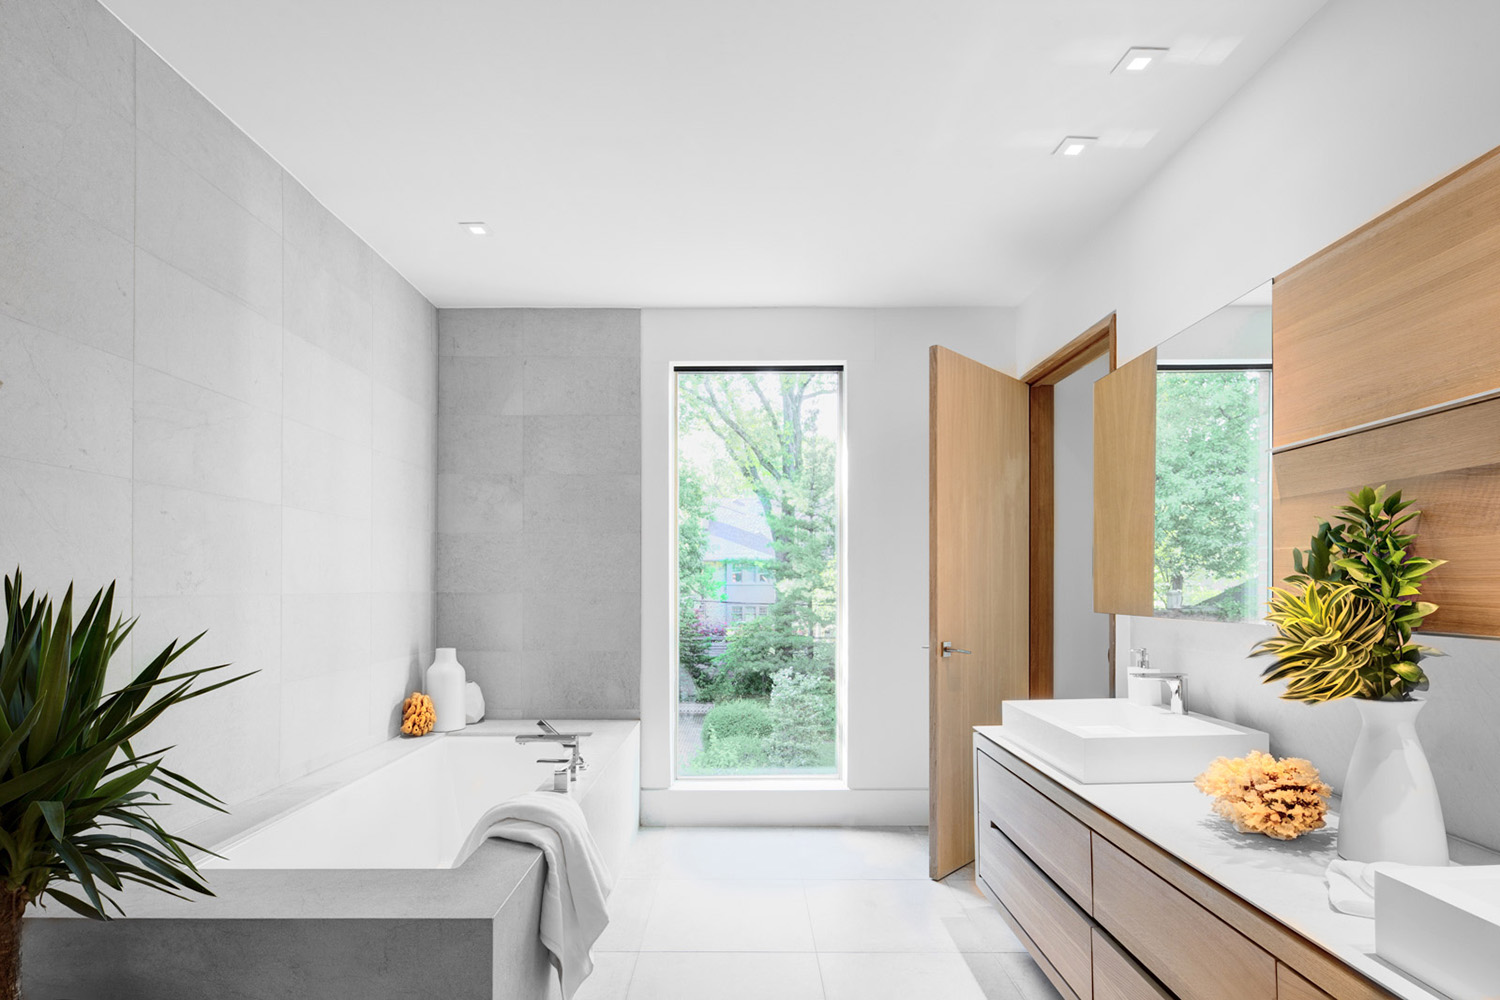 Master Bathroom with large integral soaking tub with muted gray tiles and basin sinks